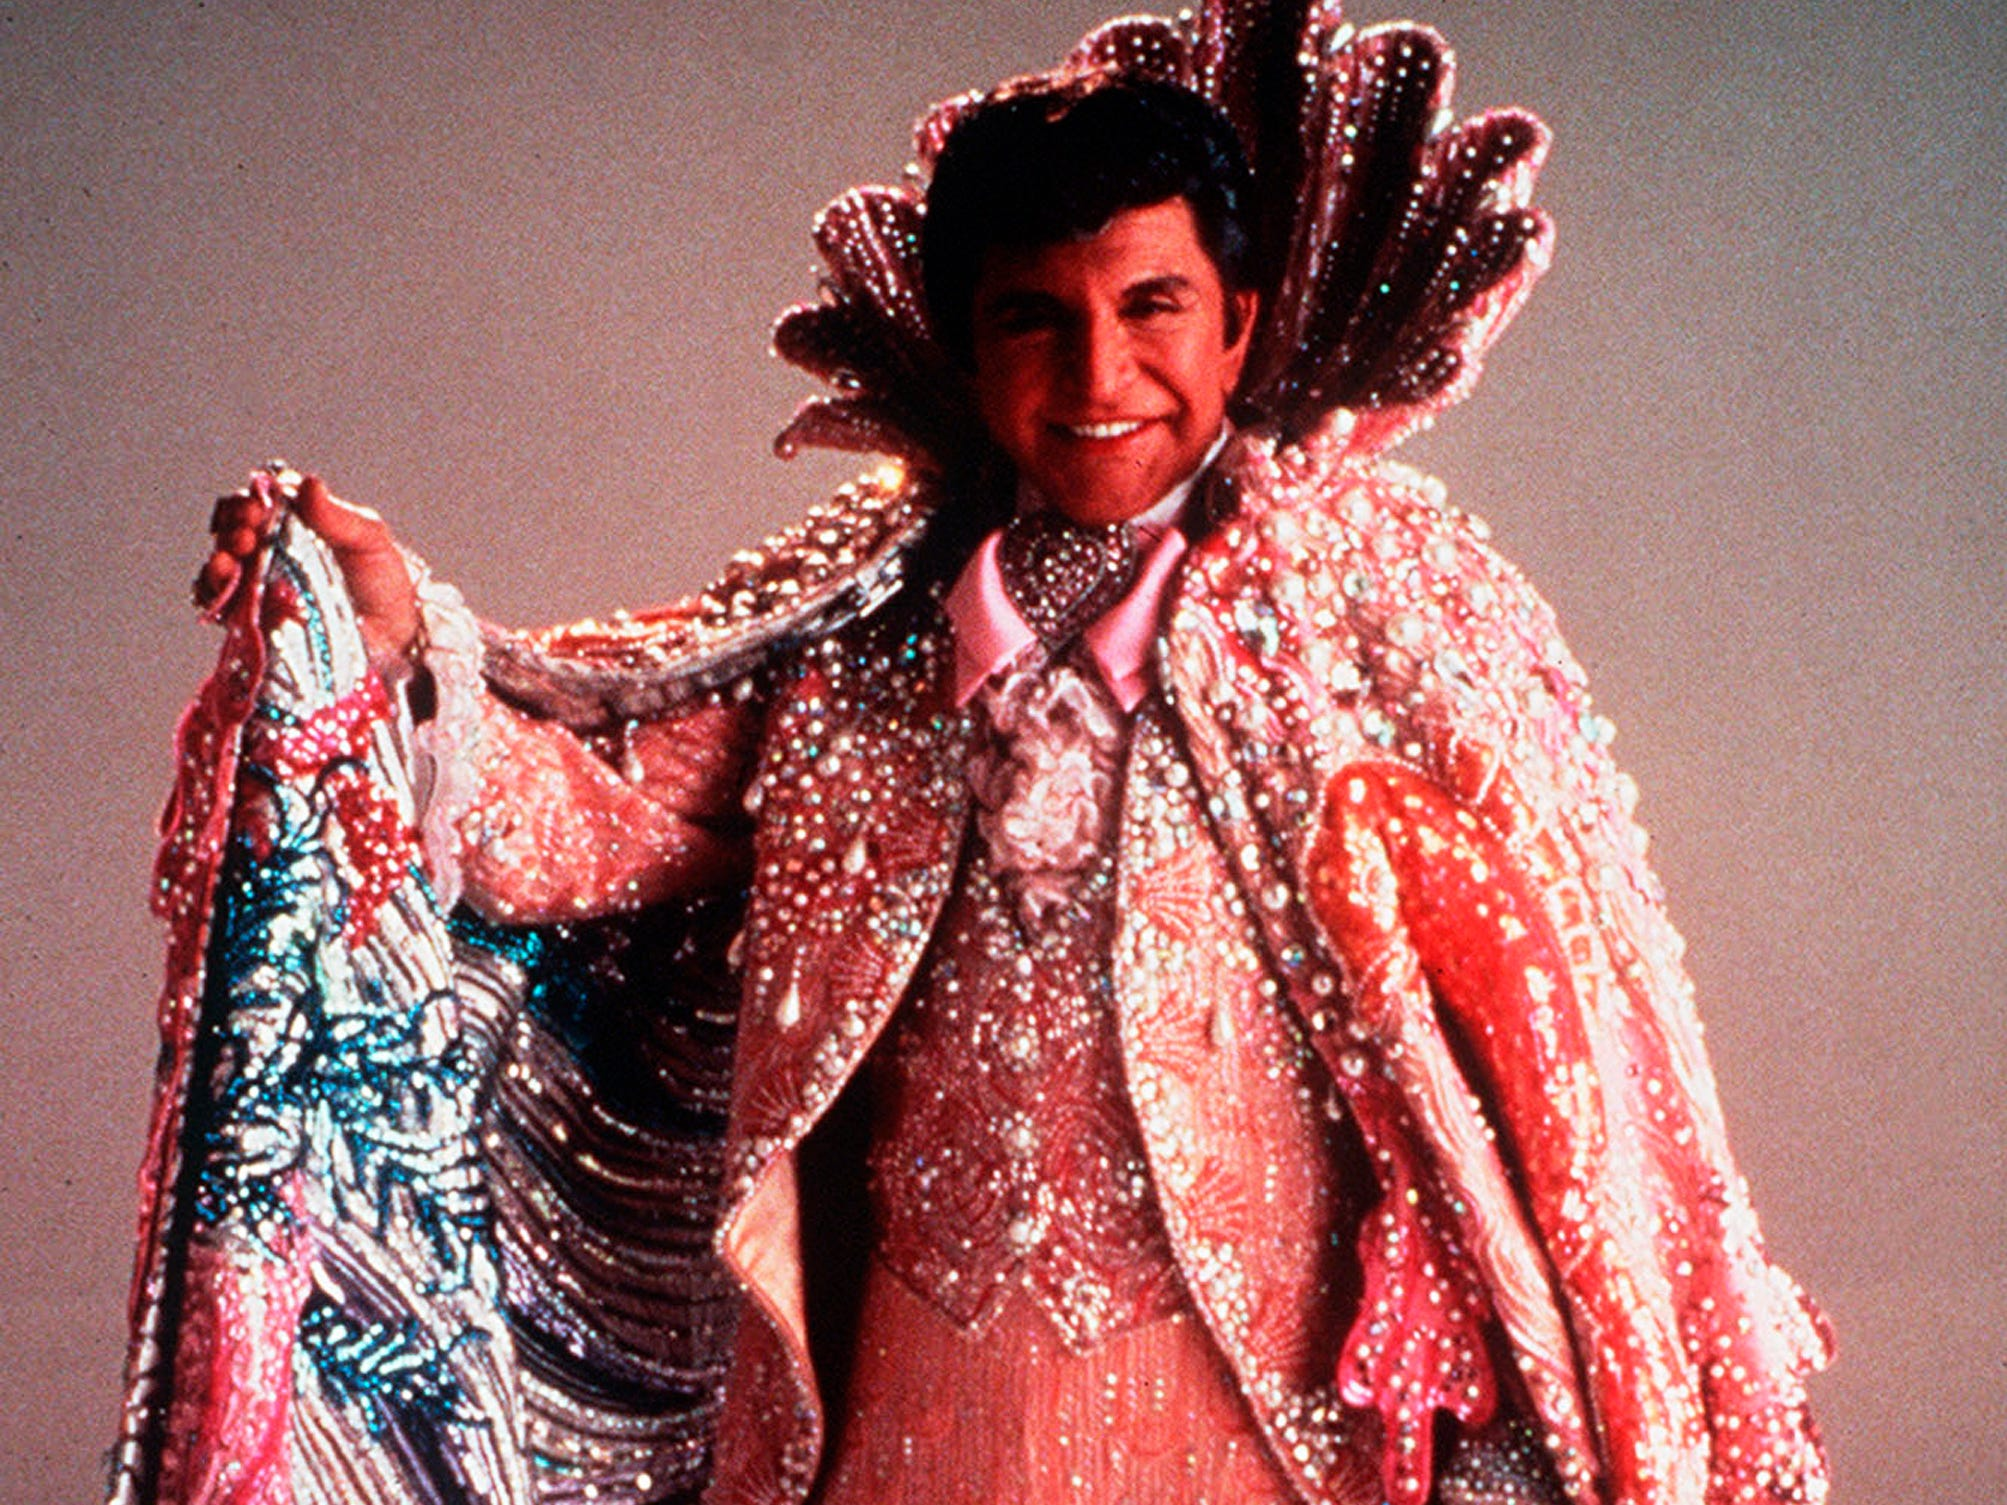 Liberace: He performed in Vegas for decades, beginning in 1944.